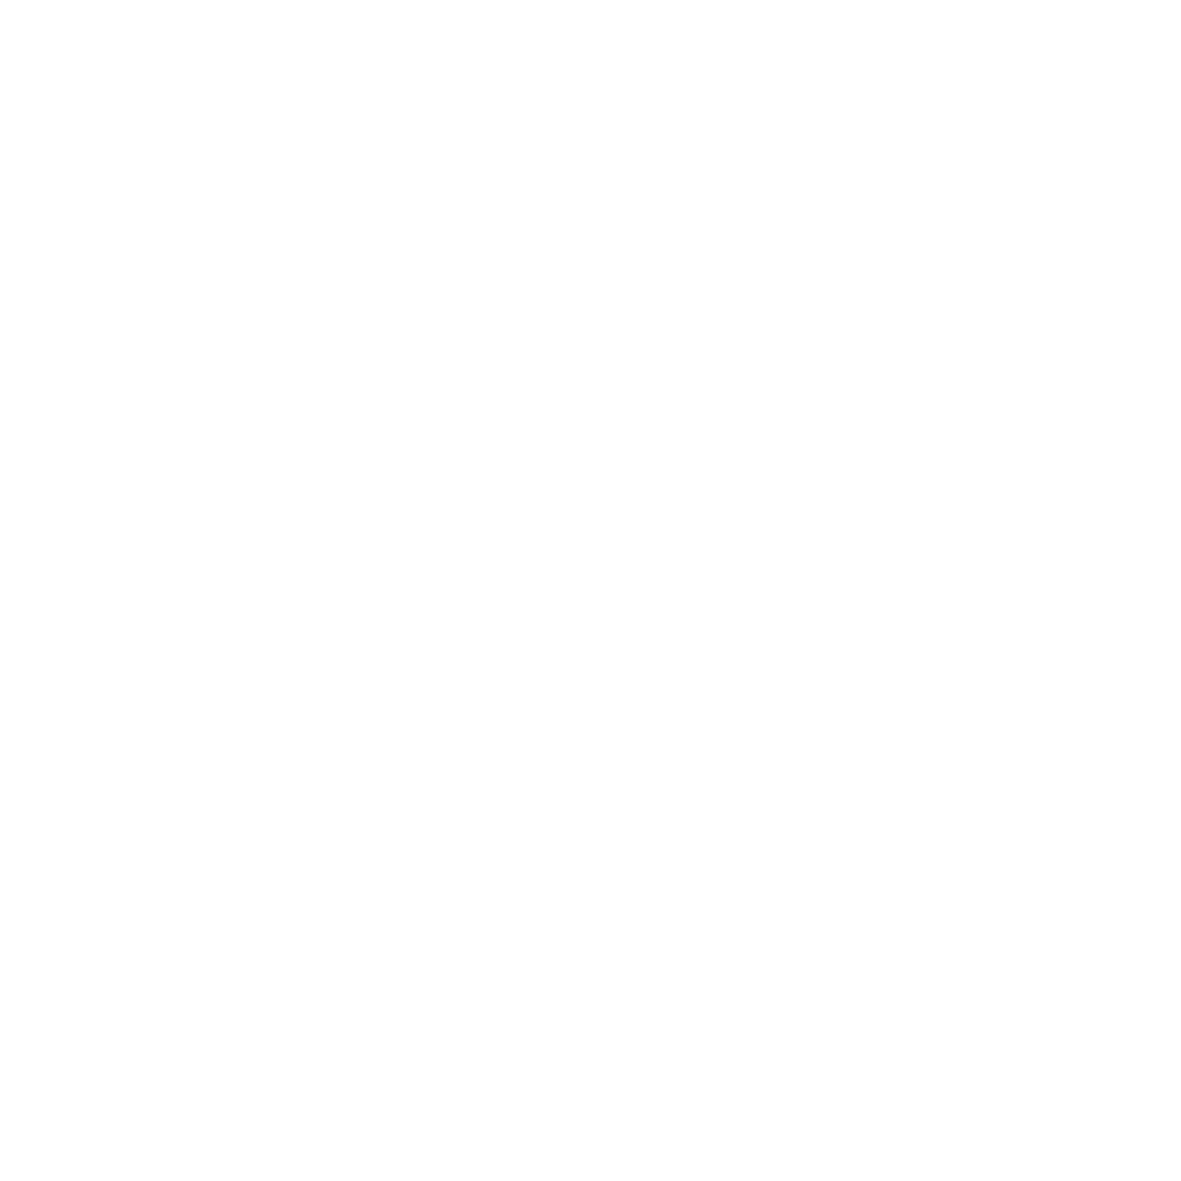 redaphotography